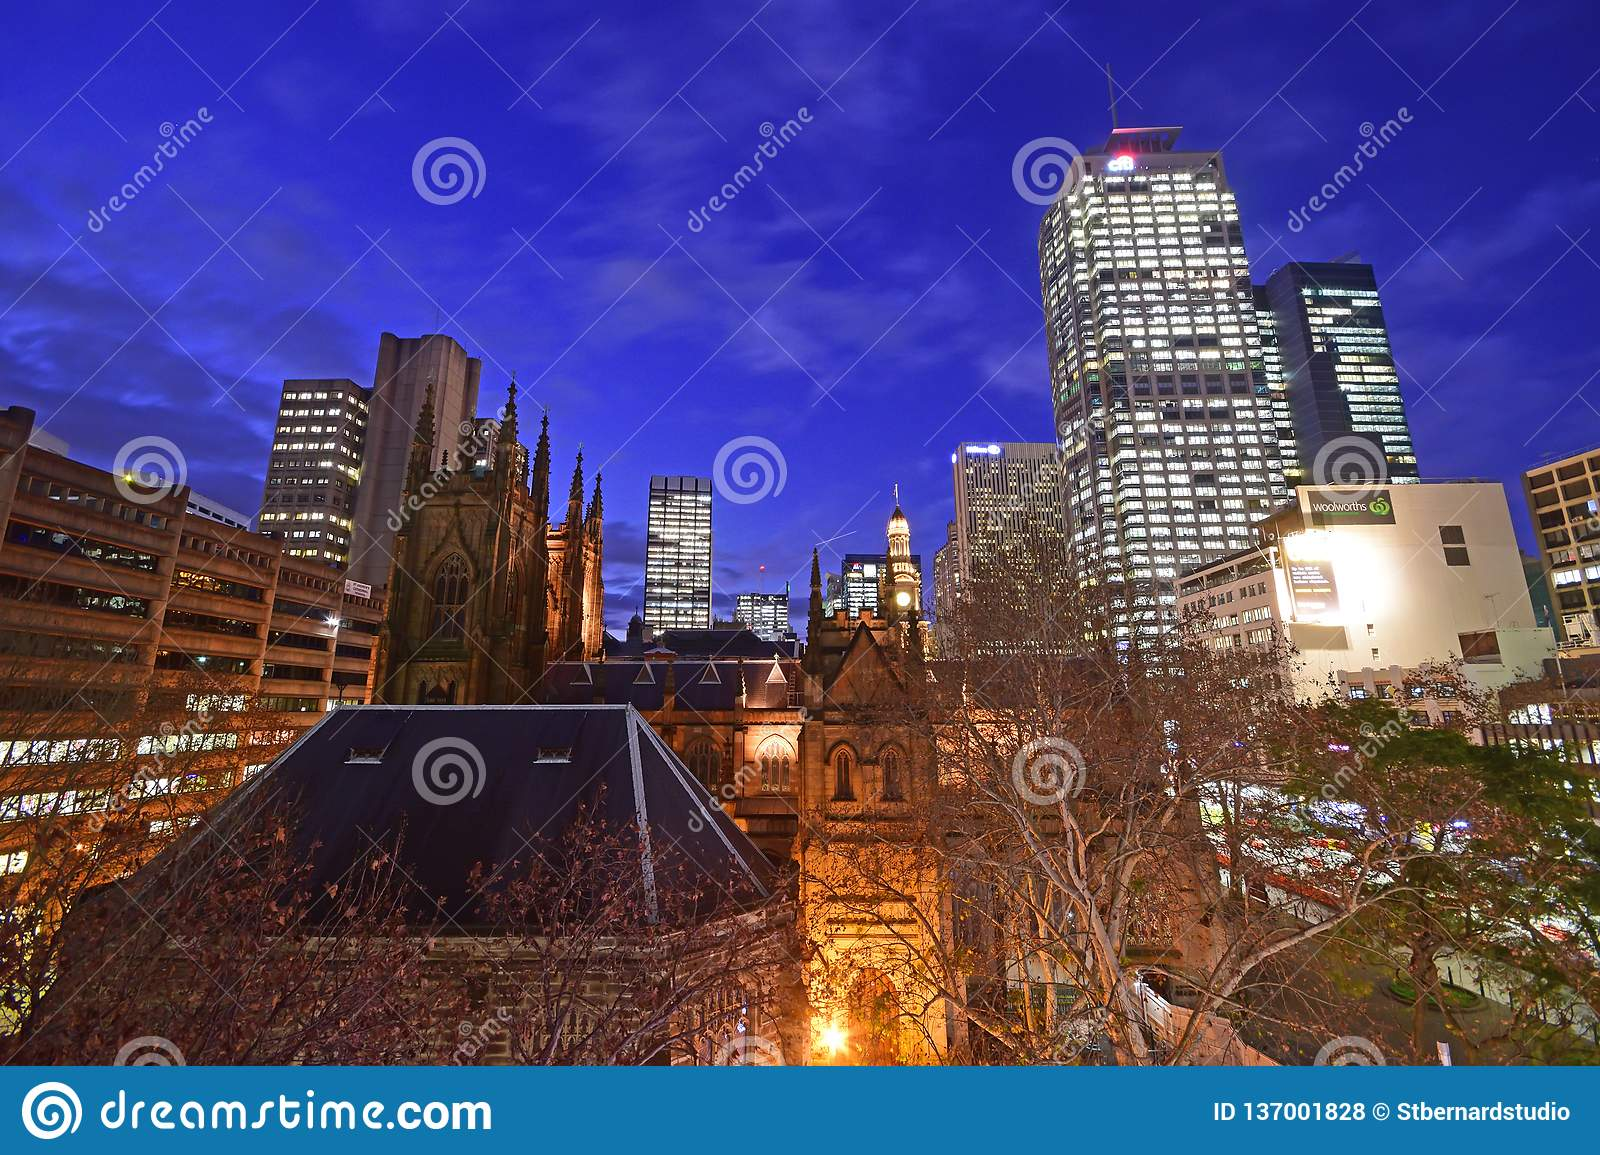 A late evening, early night scenery of glittering Sydney CBD around townhall area taken from rooftop building